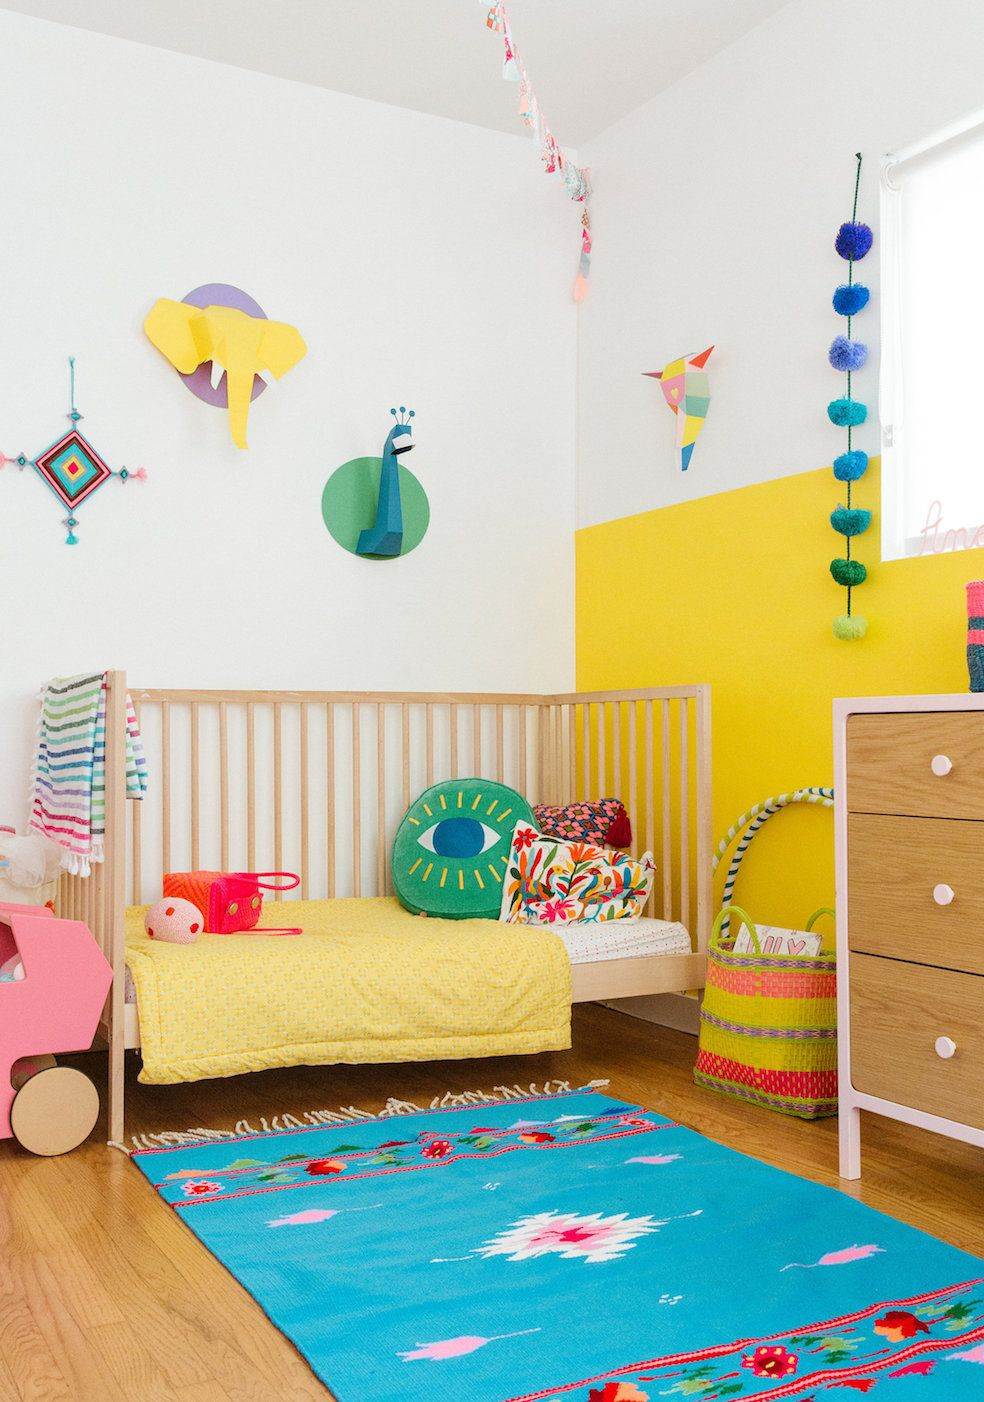 A Colorful Home in Venice Beach | Venice beach, Kids rooms and Nursery